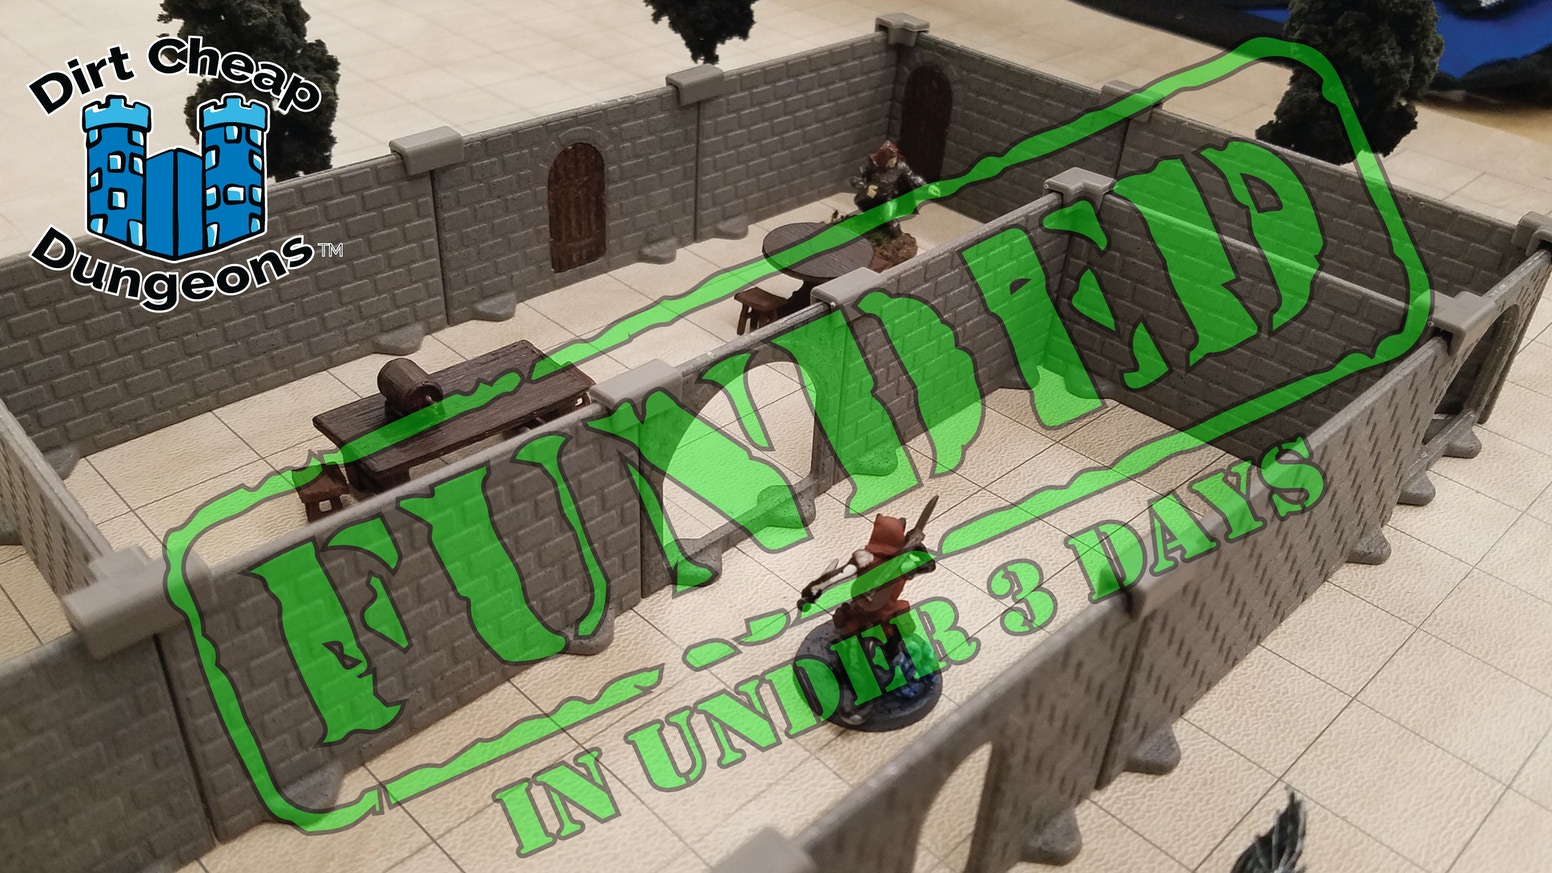 We've developed a modular, portable, durable and AFFORDABLE miniature dungeon system for use with tabletop role playing games.